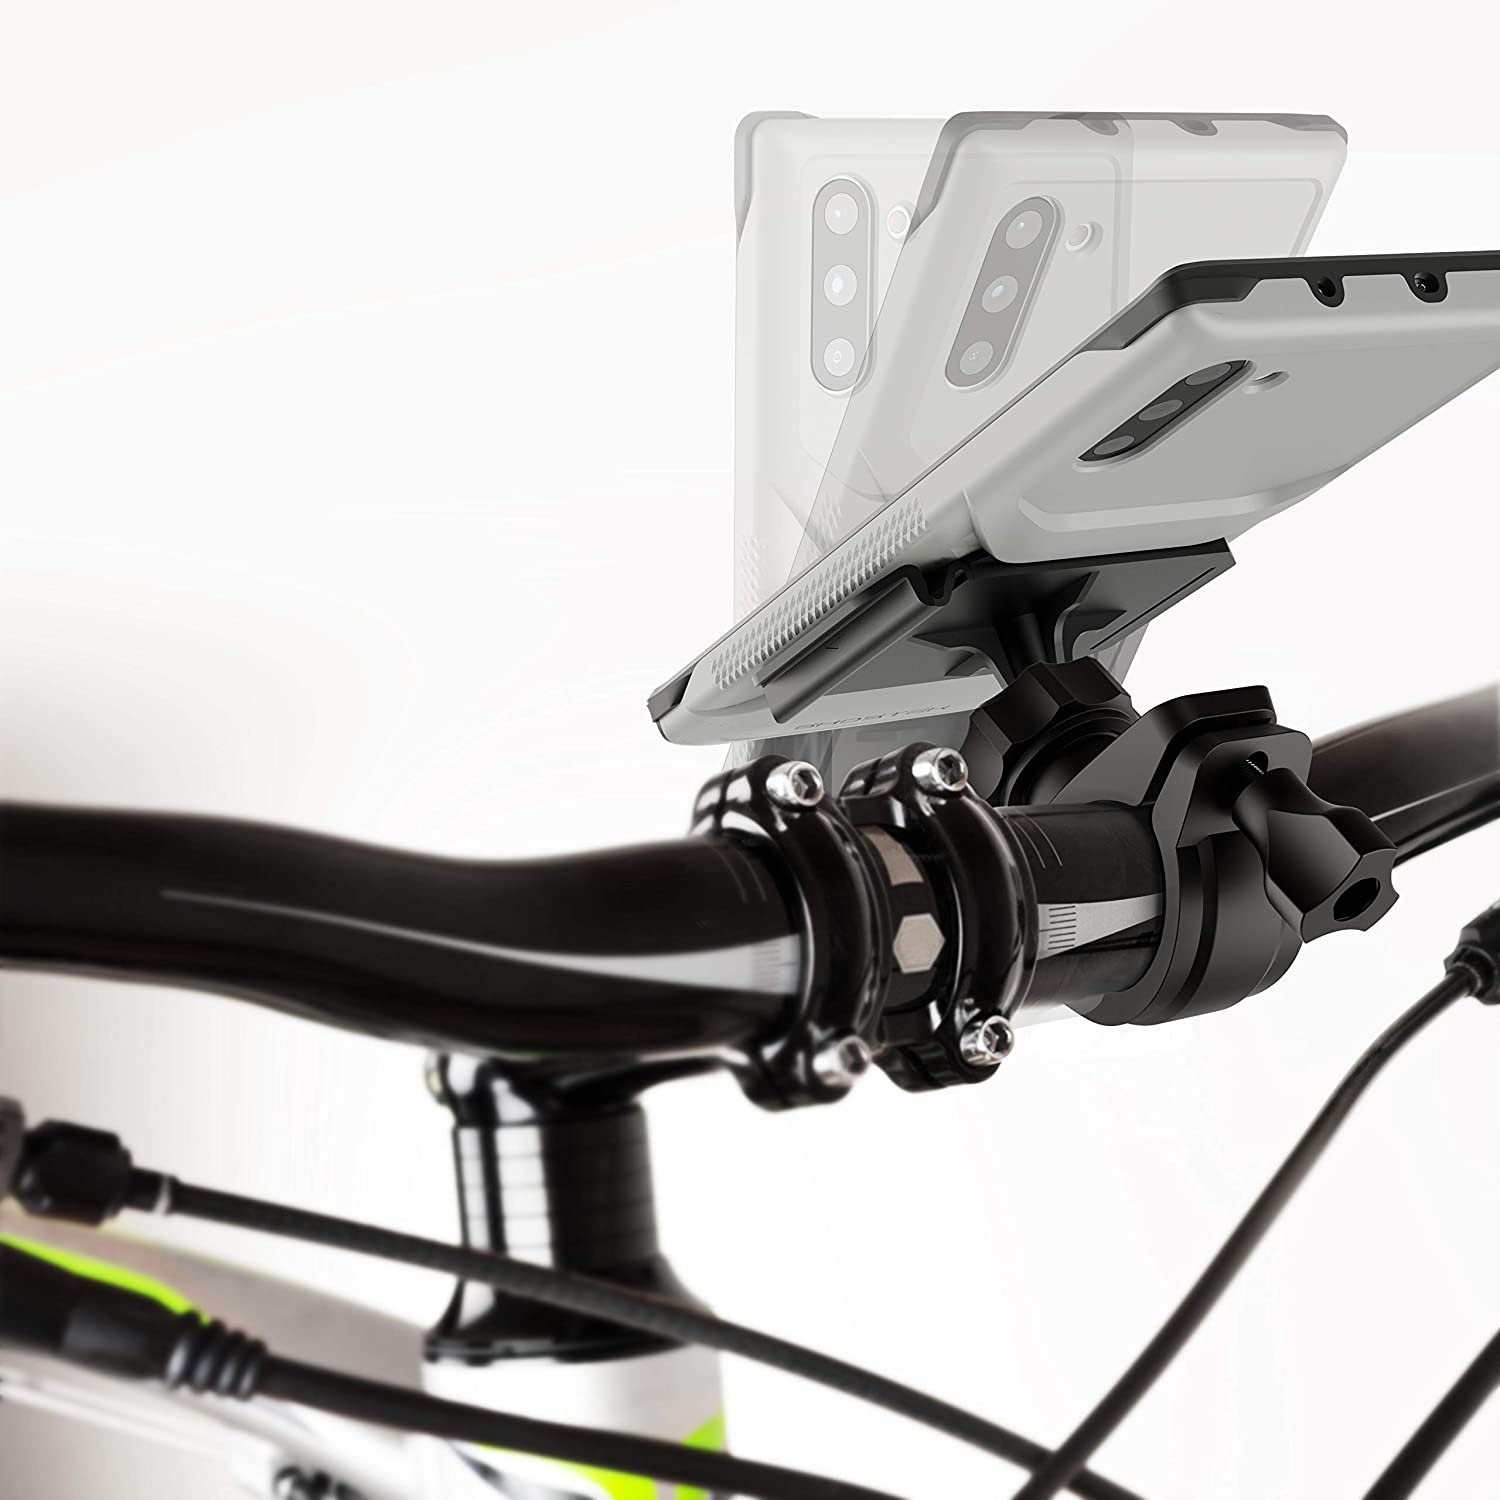 BIKE MOUNT Attachment Accessory | Ghostek Accessory FOR EXEC 4 CASE